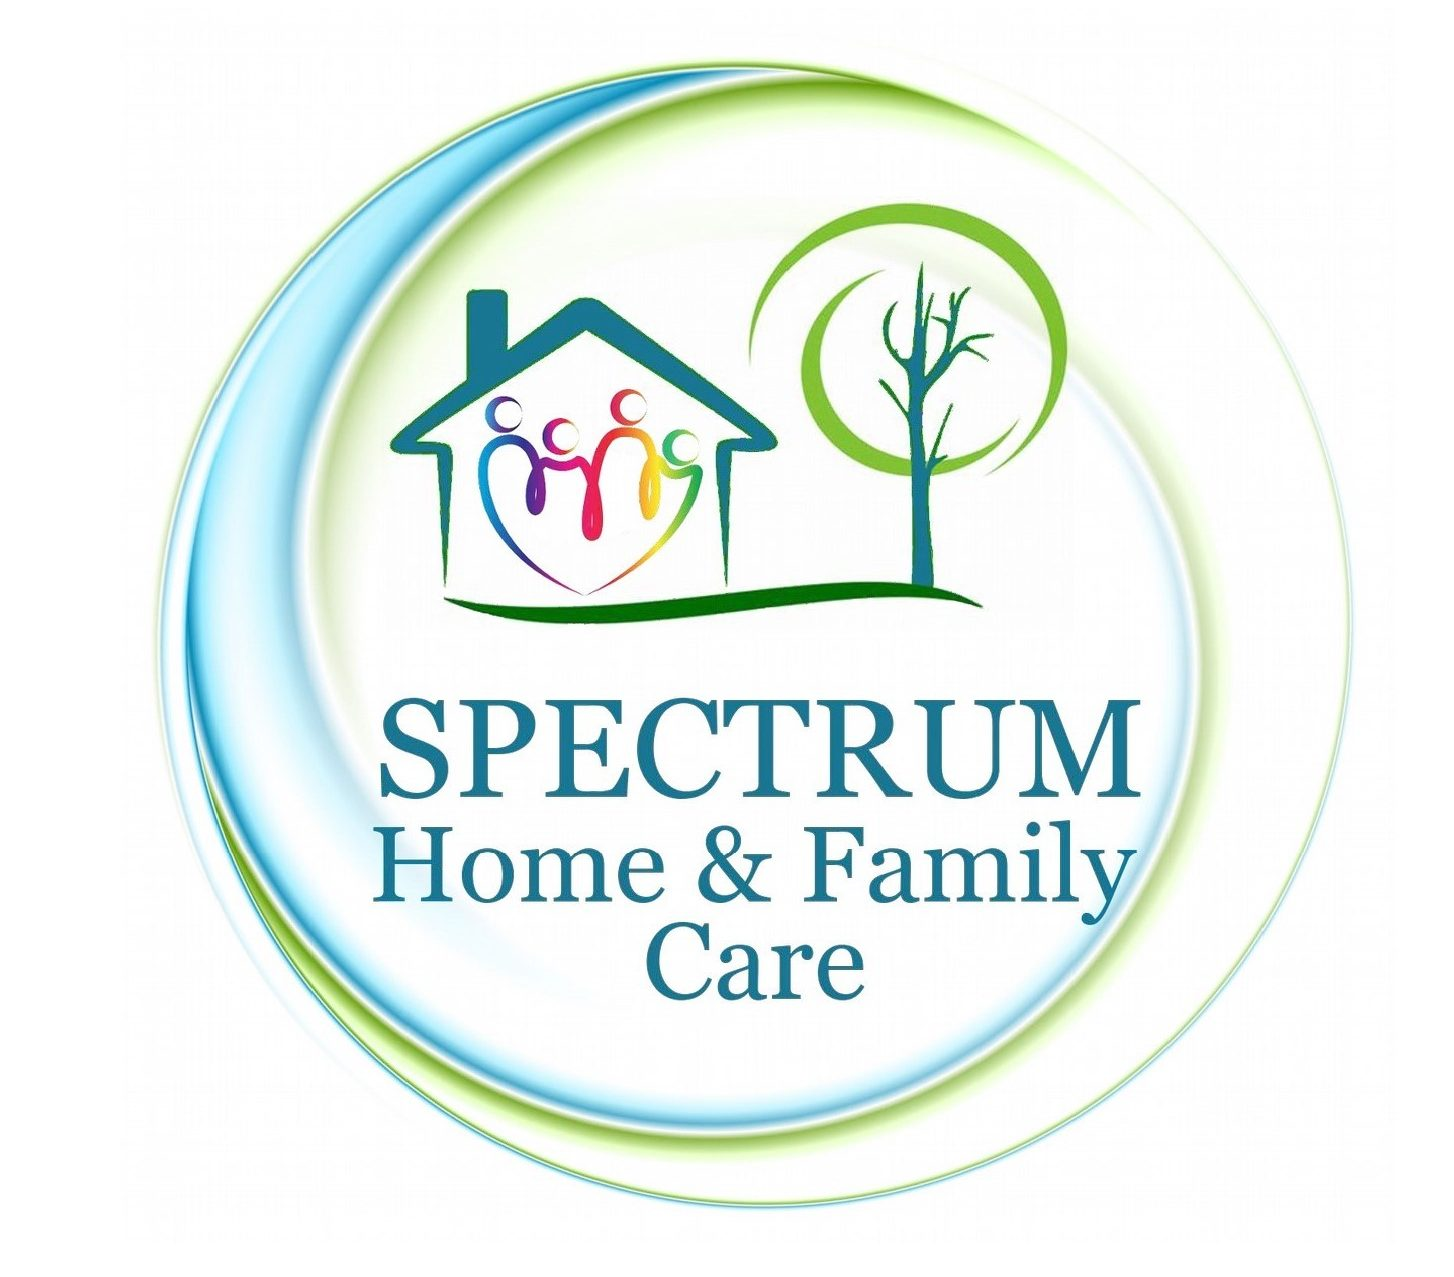 Spectrum Home & Family Care